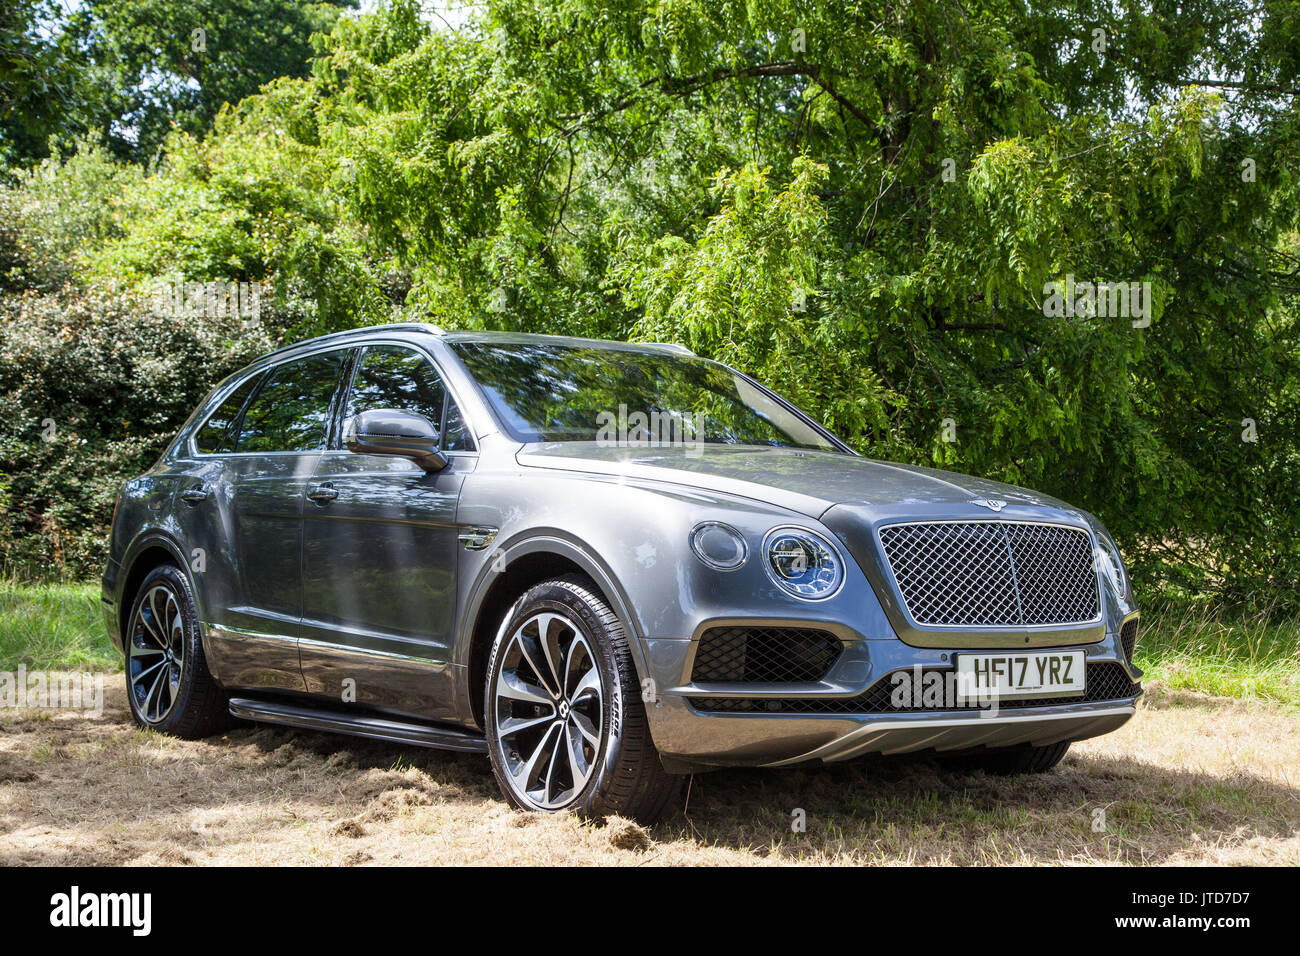 Suv 4wd Stock Photos Amp Suv 4wd Stock Images Alamy